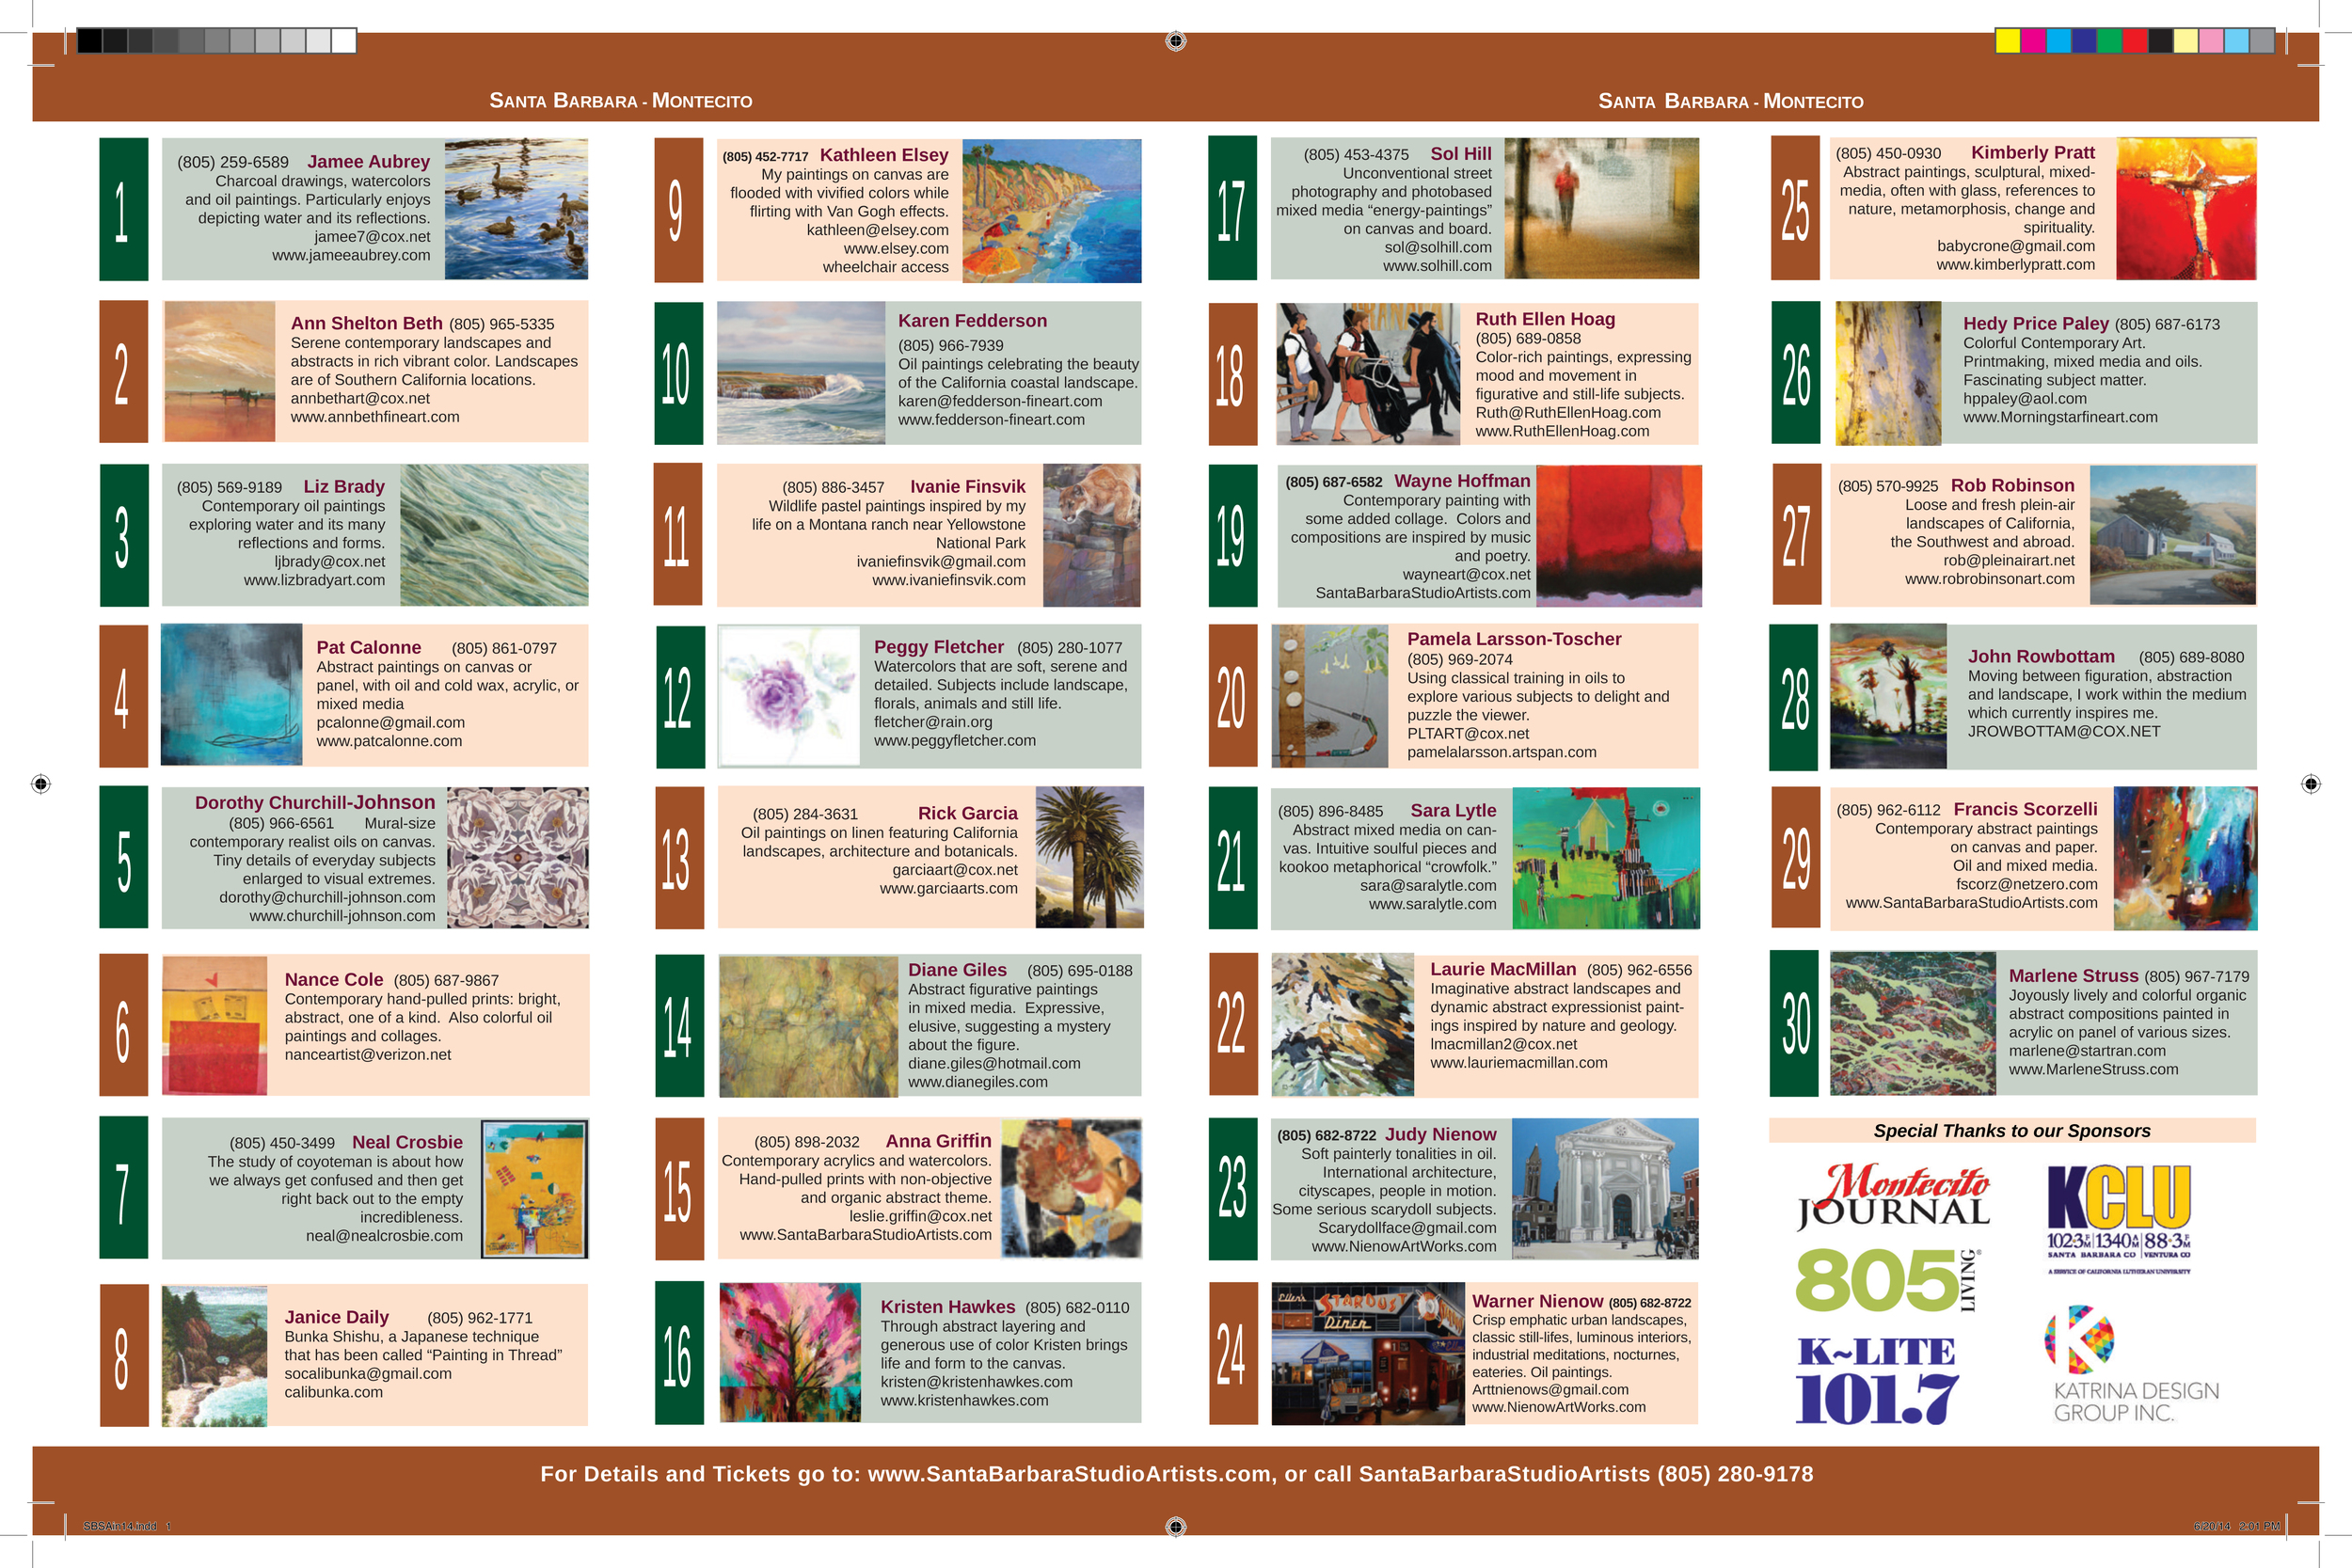 SBSA 2014 Brochure inside - Final Version.jpg